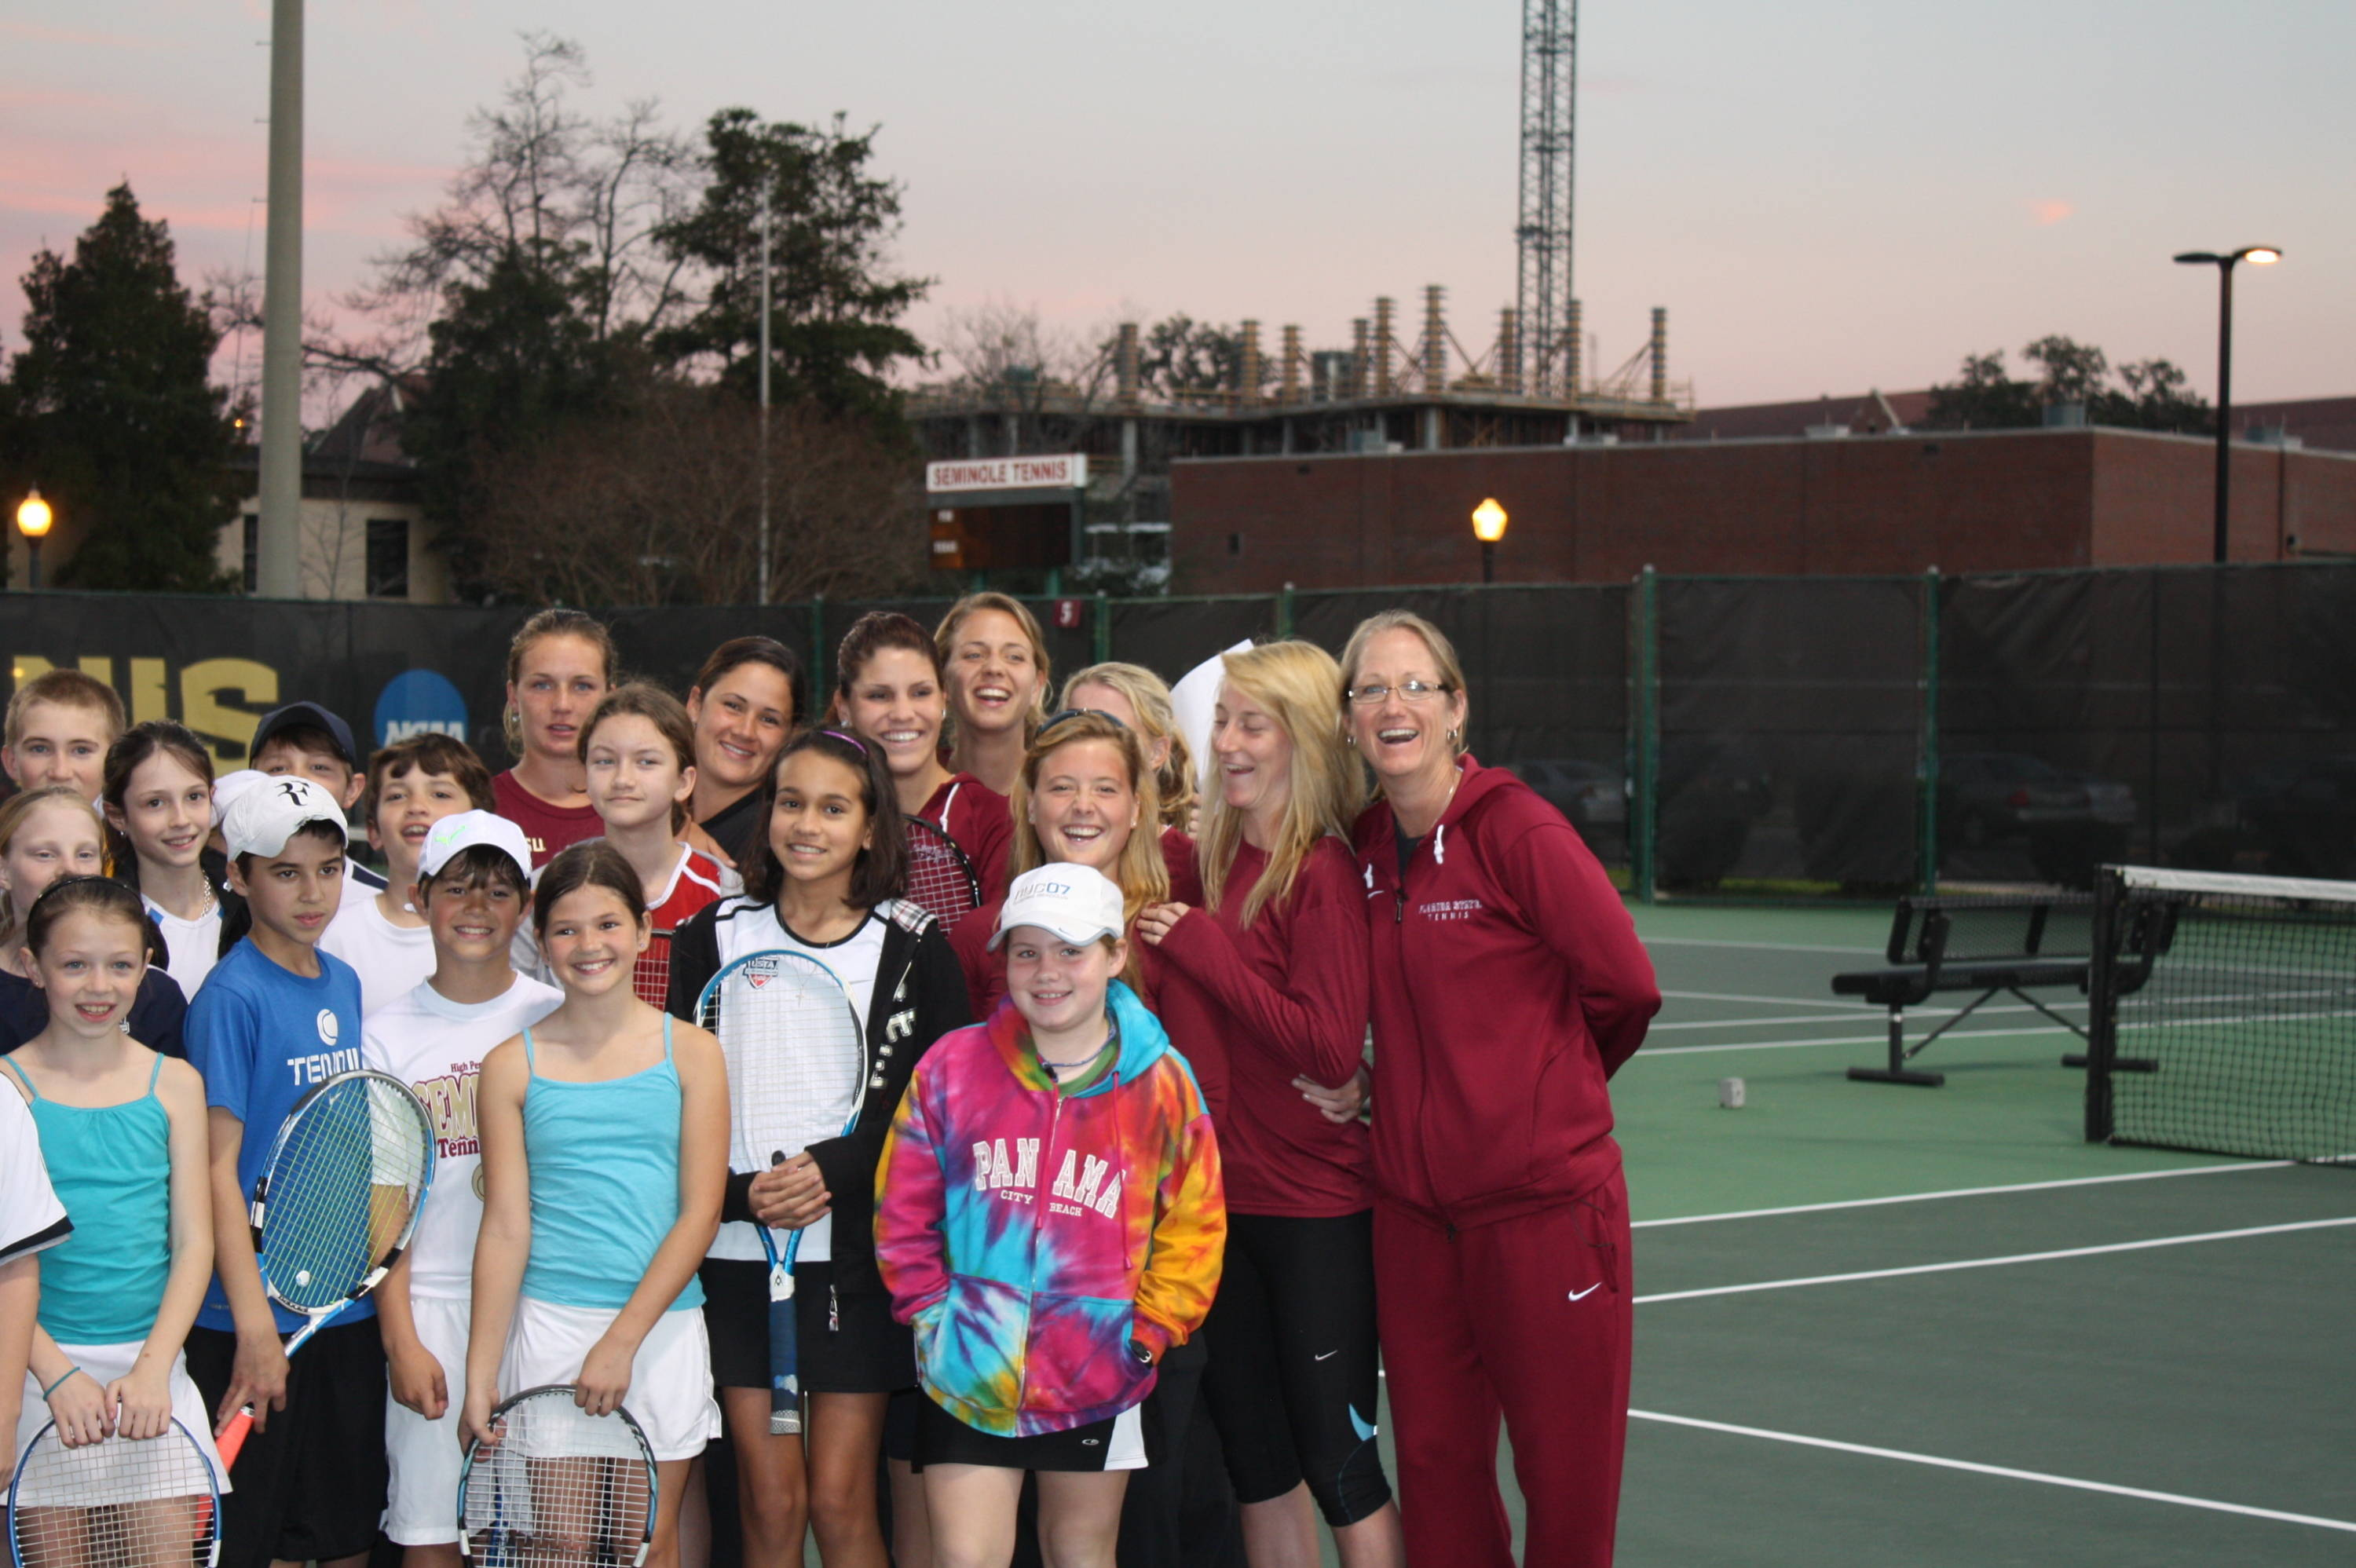 Tennis community clinic (women's team)